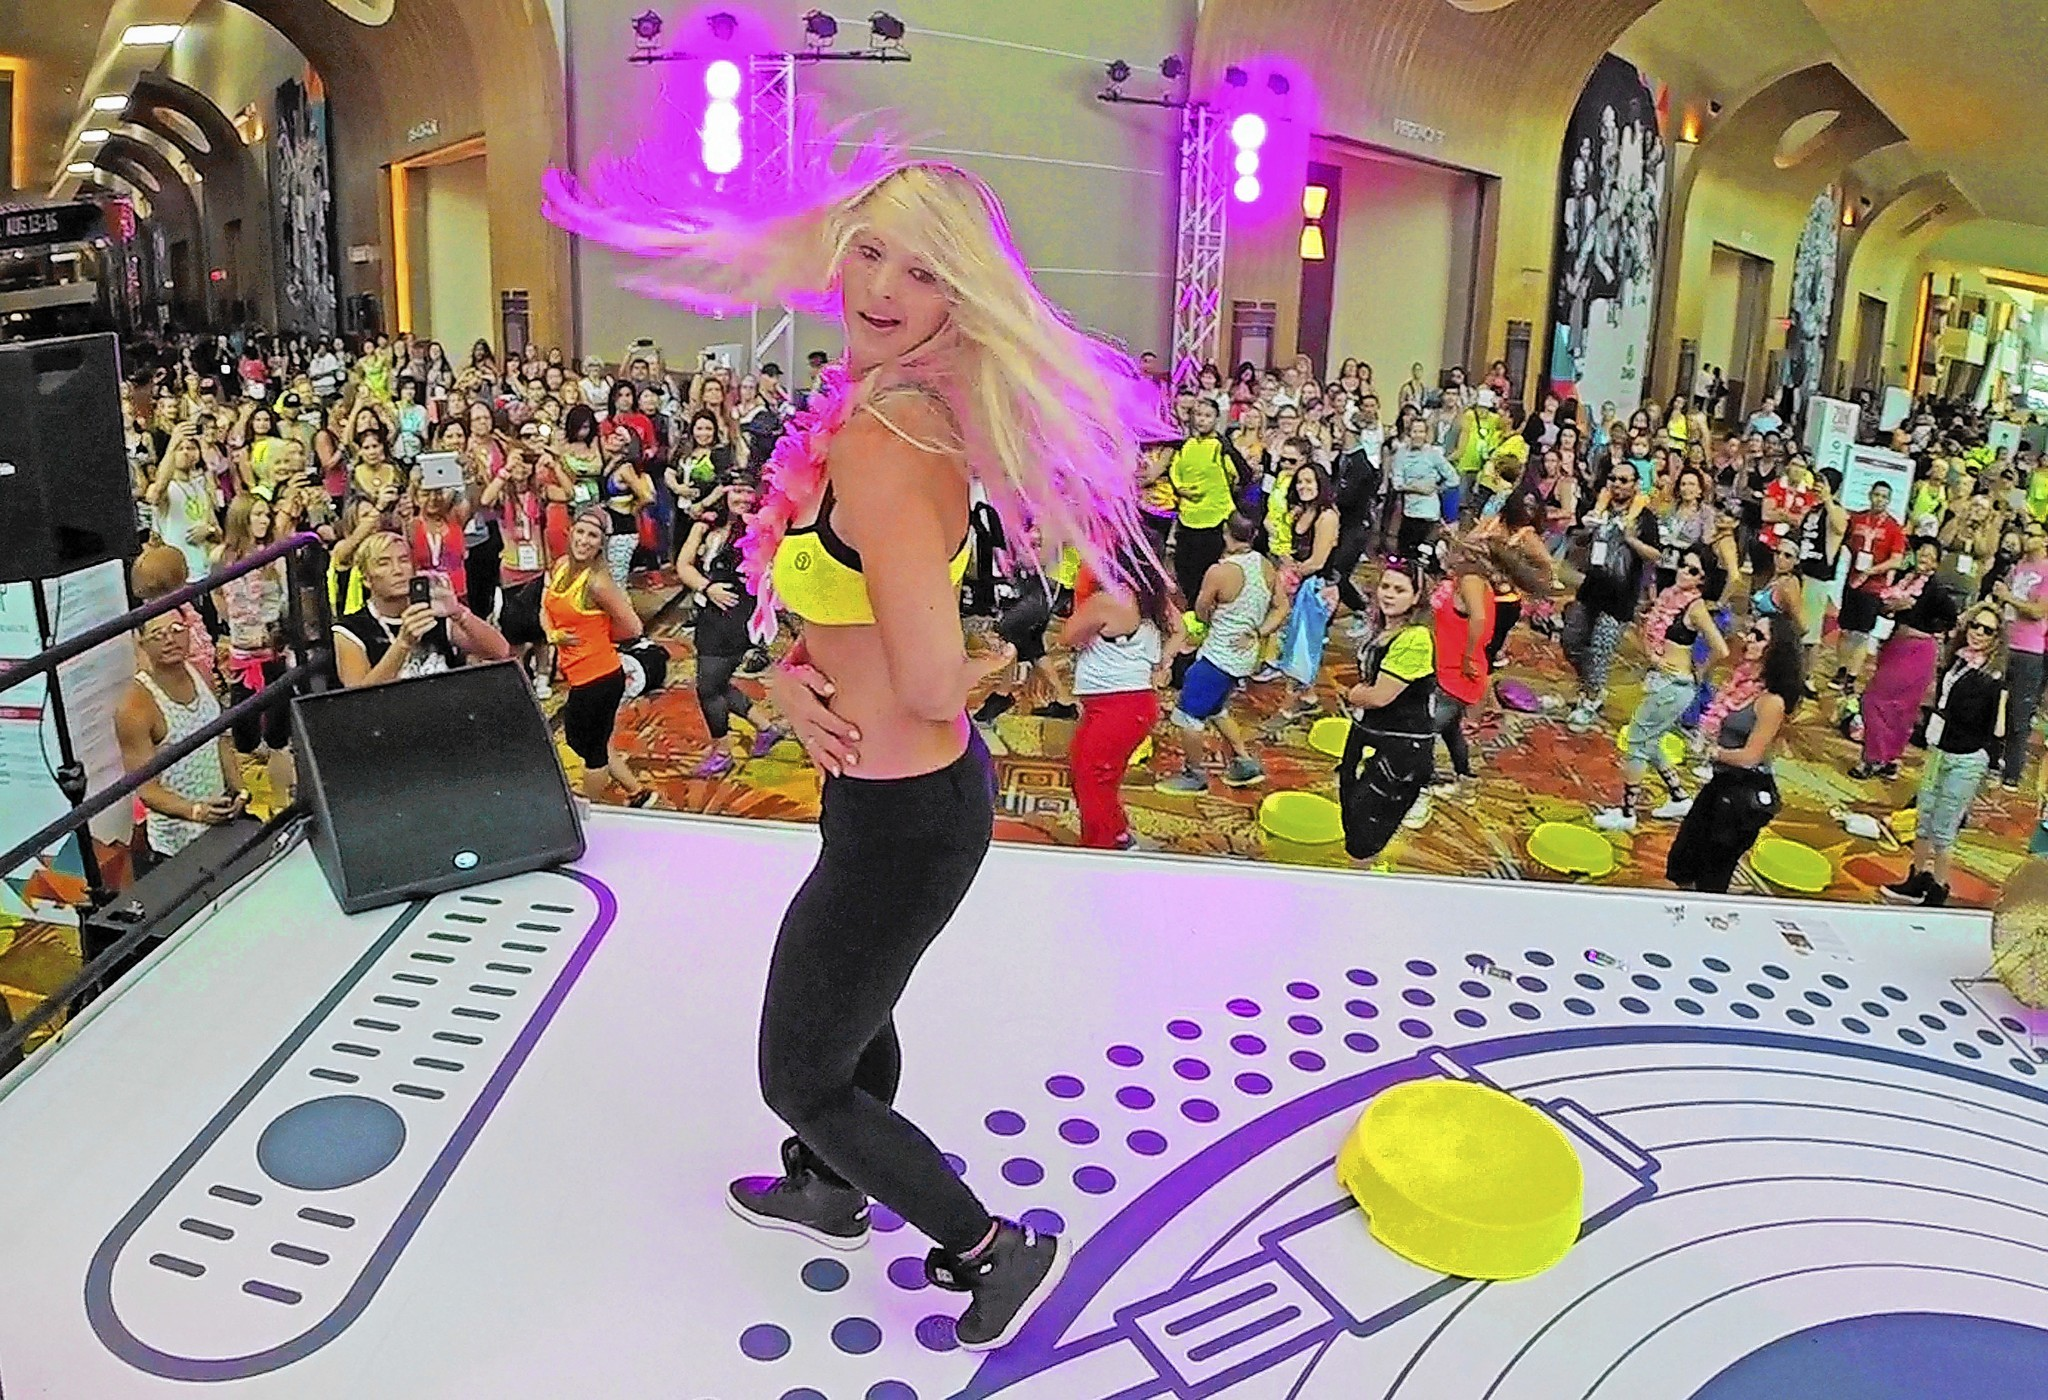 Marcie Benavides of Miami, a Zumba education specialist, demonstrates a new step routine to Zumba instructors at the Hyatt Regency on International Drive.